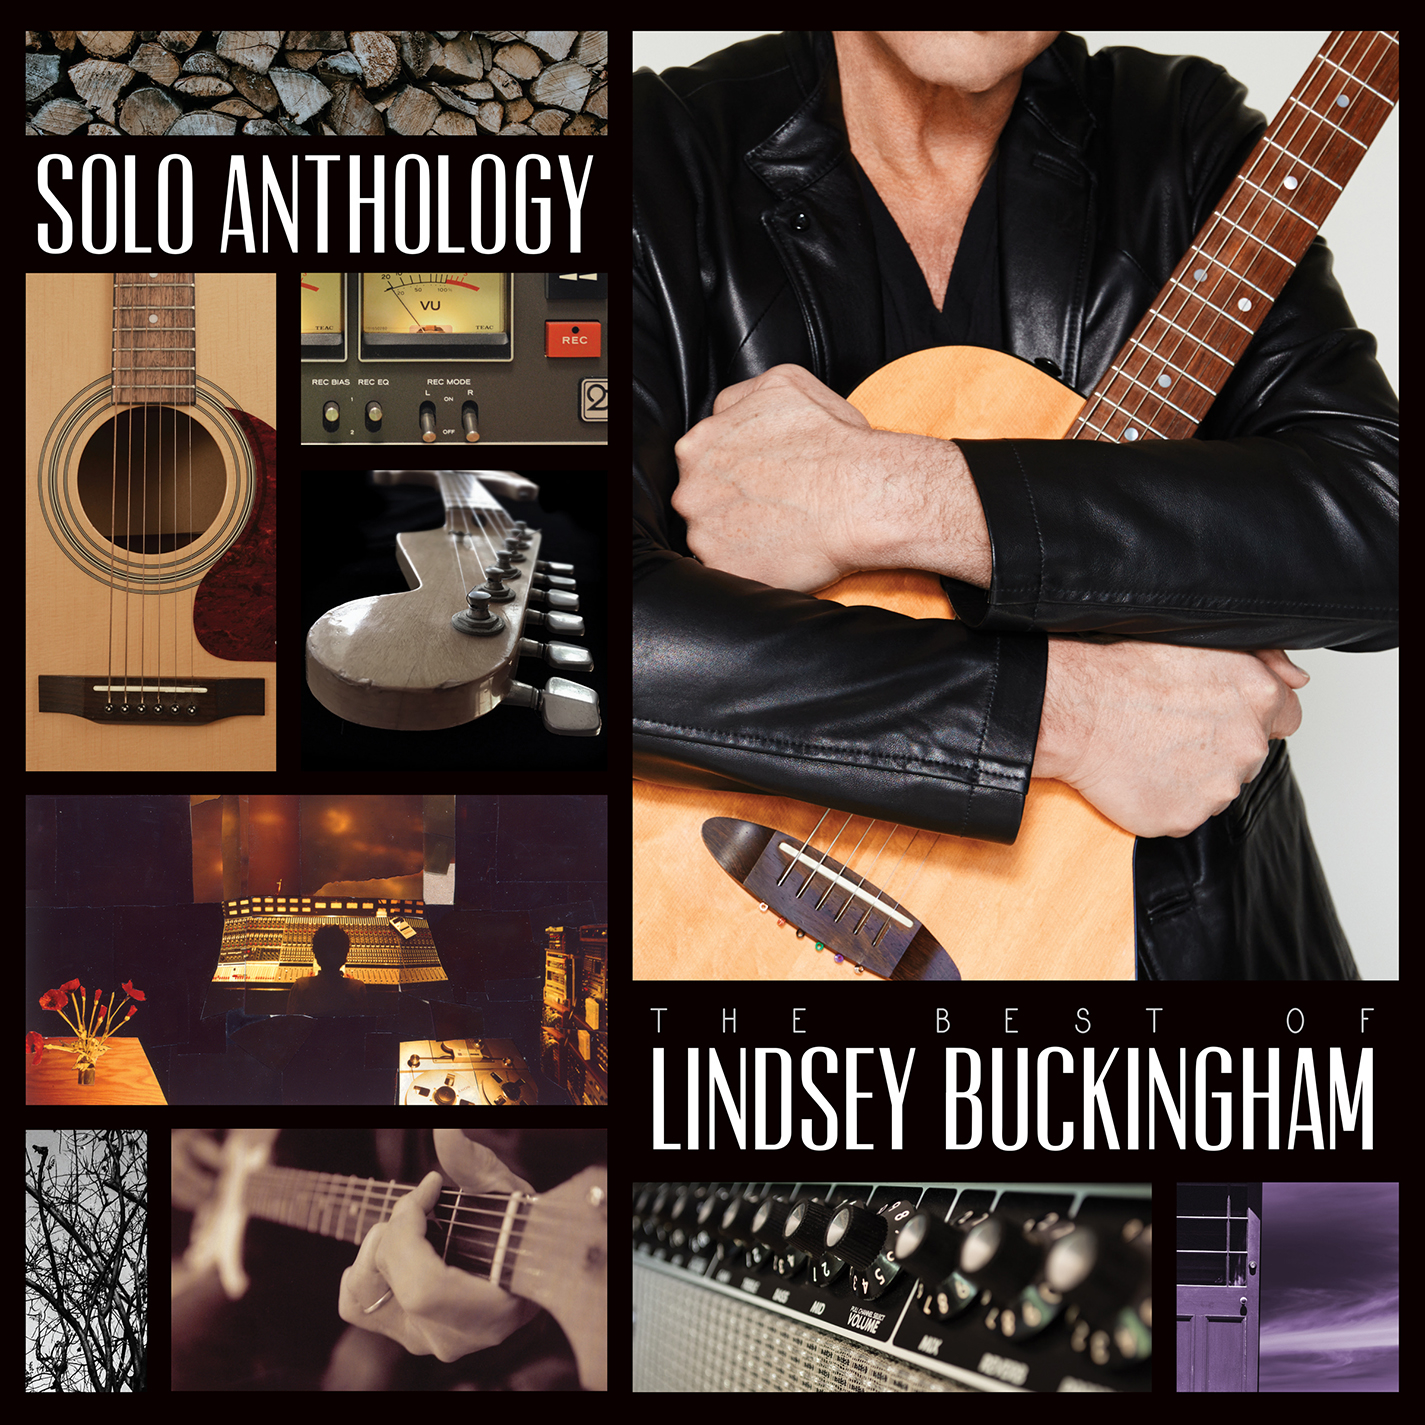 Lindsey Buckingham SOLO ANTHOLOGY Cover